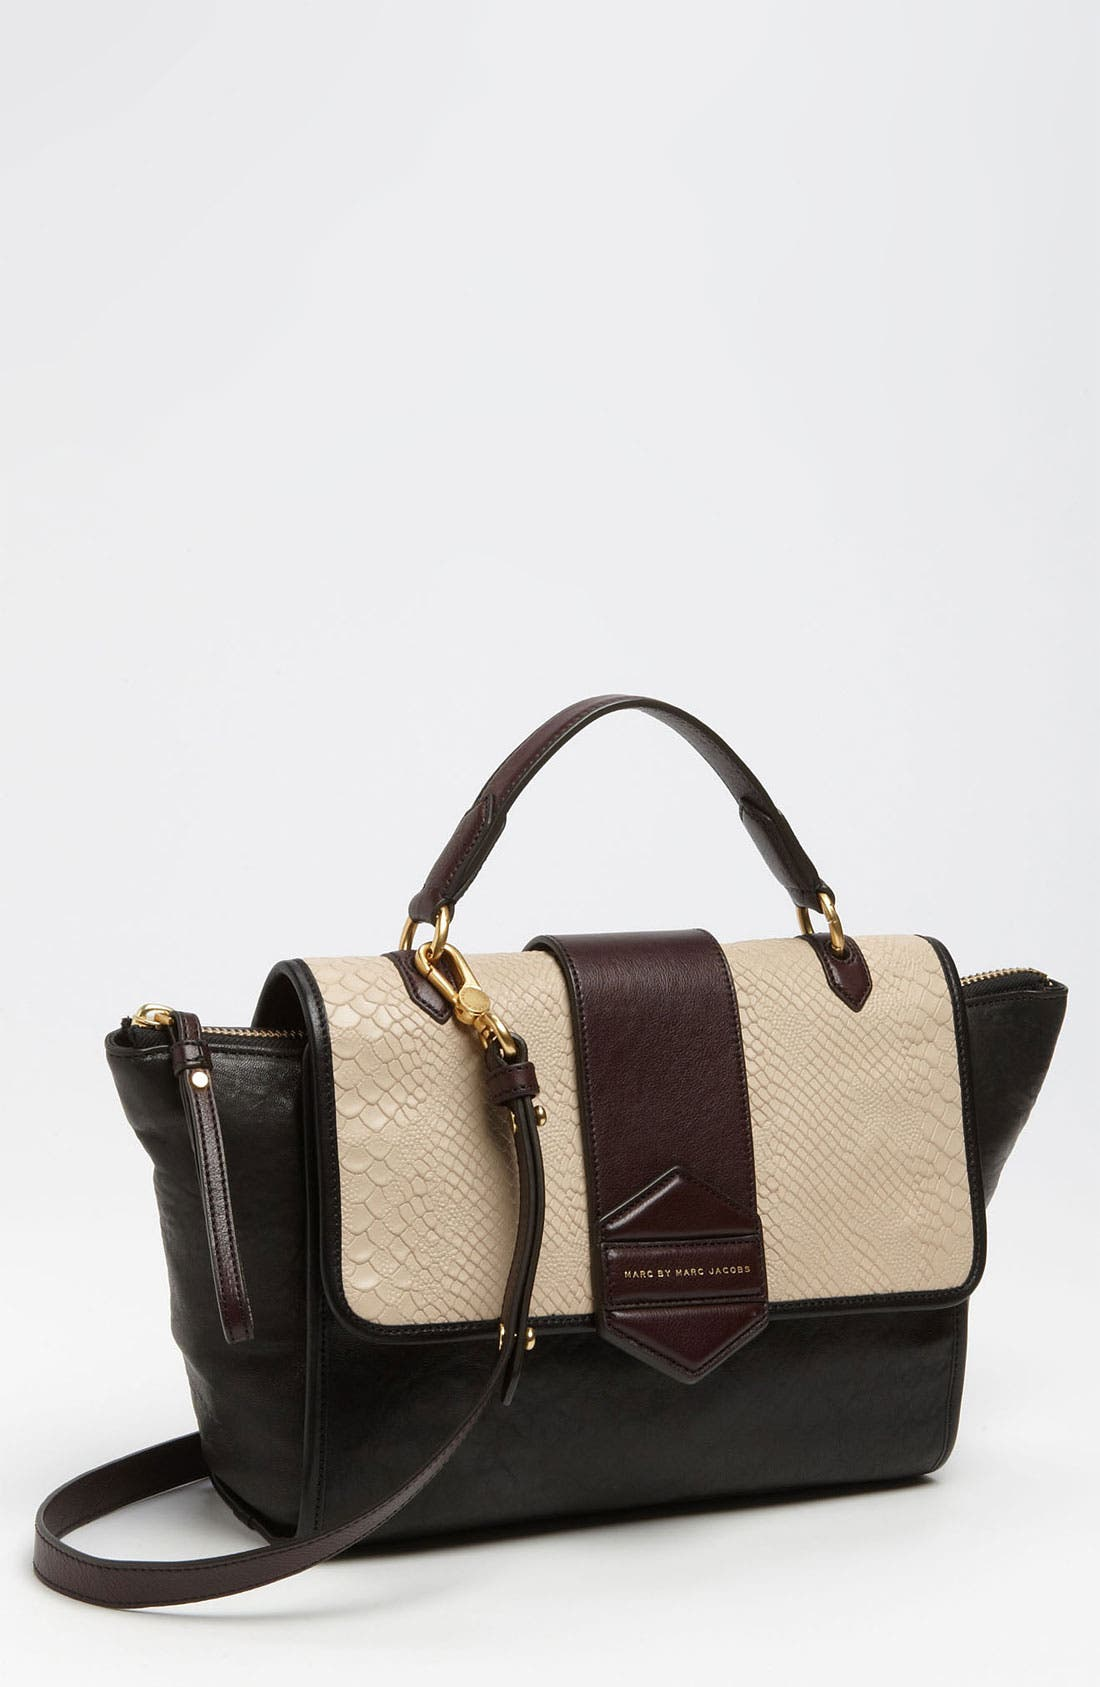 Main Image - MARC BY MARC JACOBS 'Flipping Out' Leather Satchel